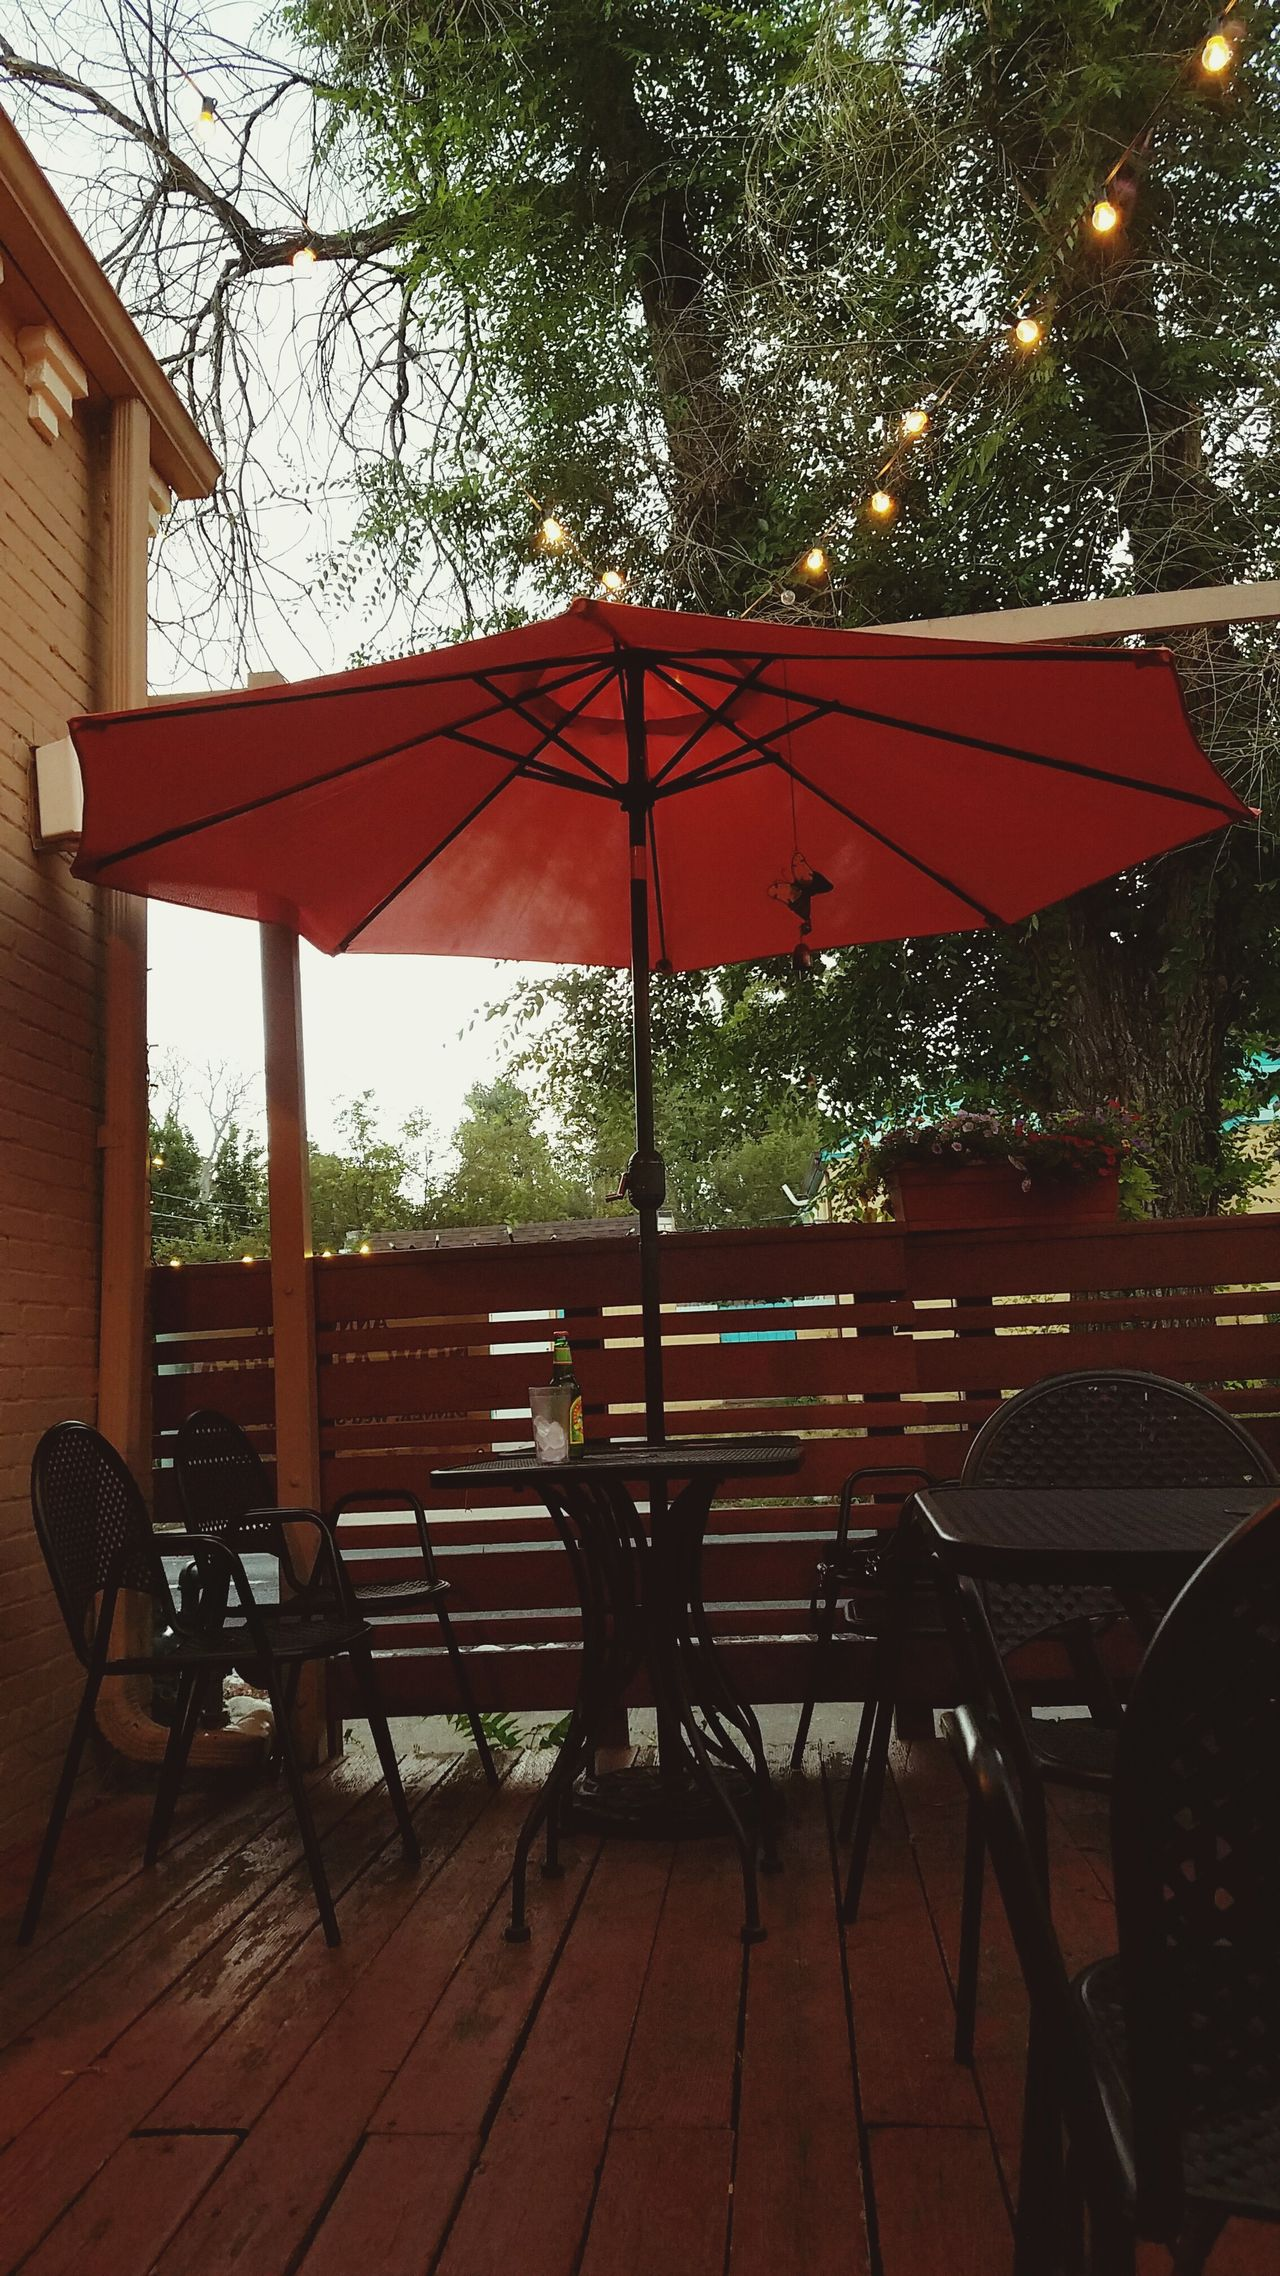 Tree Chair No People Outdoors Day Nature Sky Table Lights Summer Porch Orange Orange Umbrella Restaurant Outdoor Restaurant